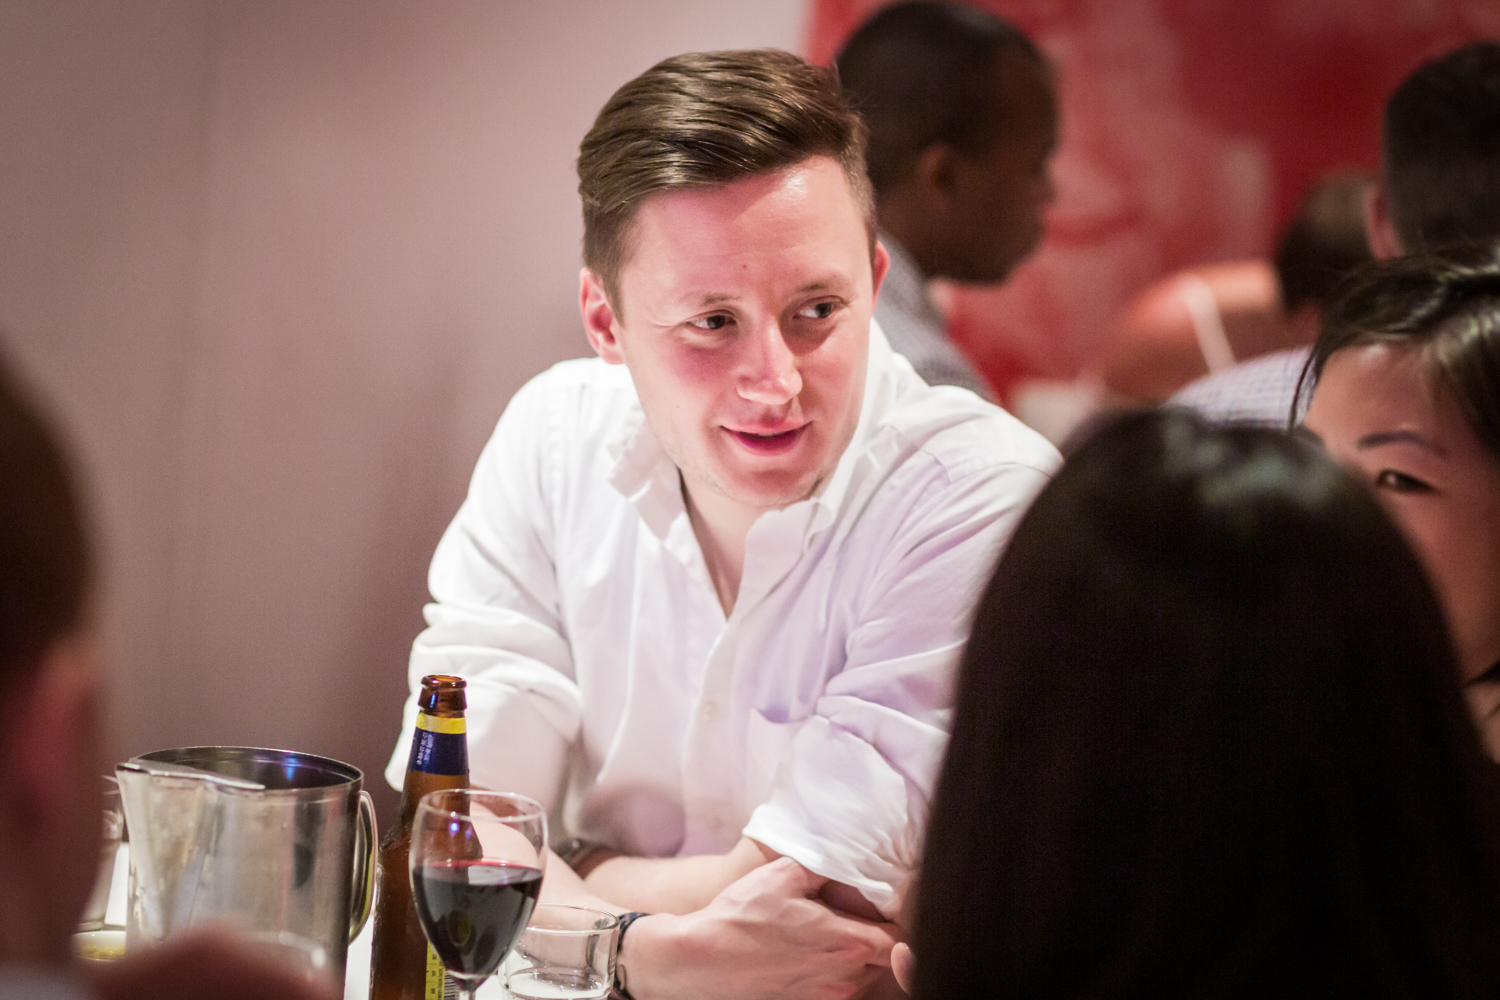 Man at table talking to other guests